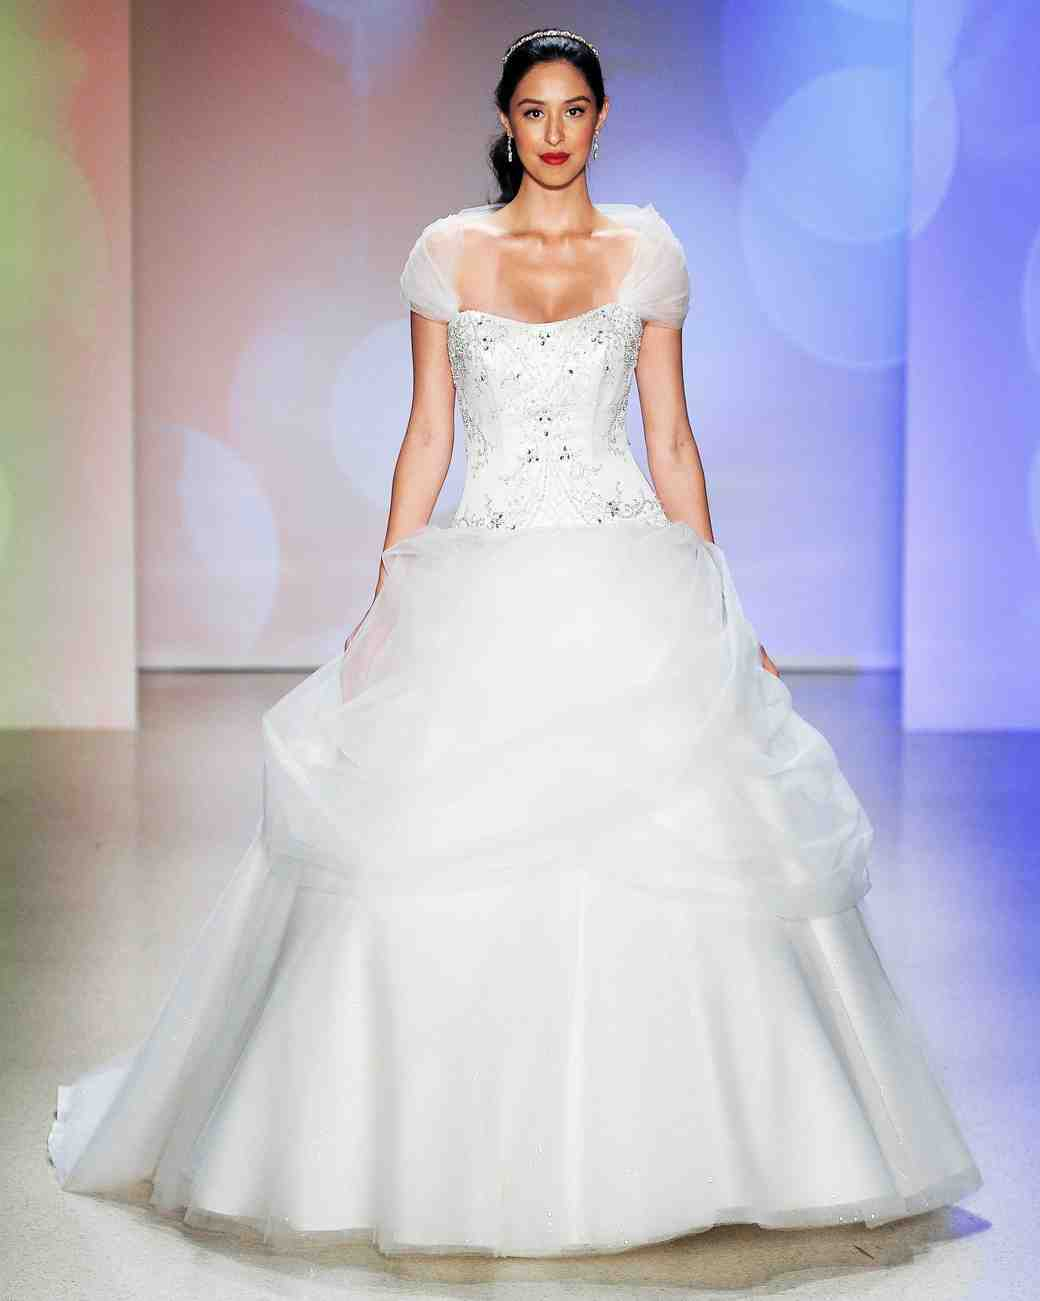 Alfredangelo wedding dresses wedding dresses in redlands for Wedding dresses for rent las vegas